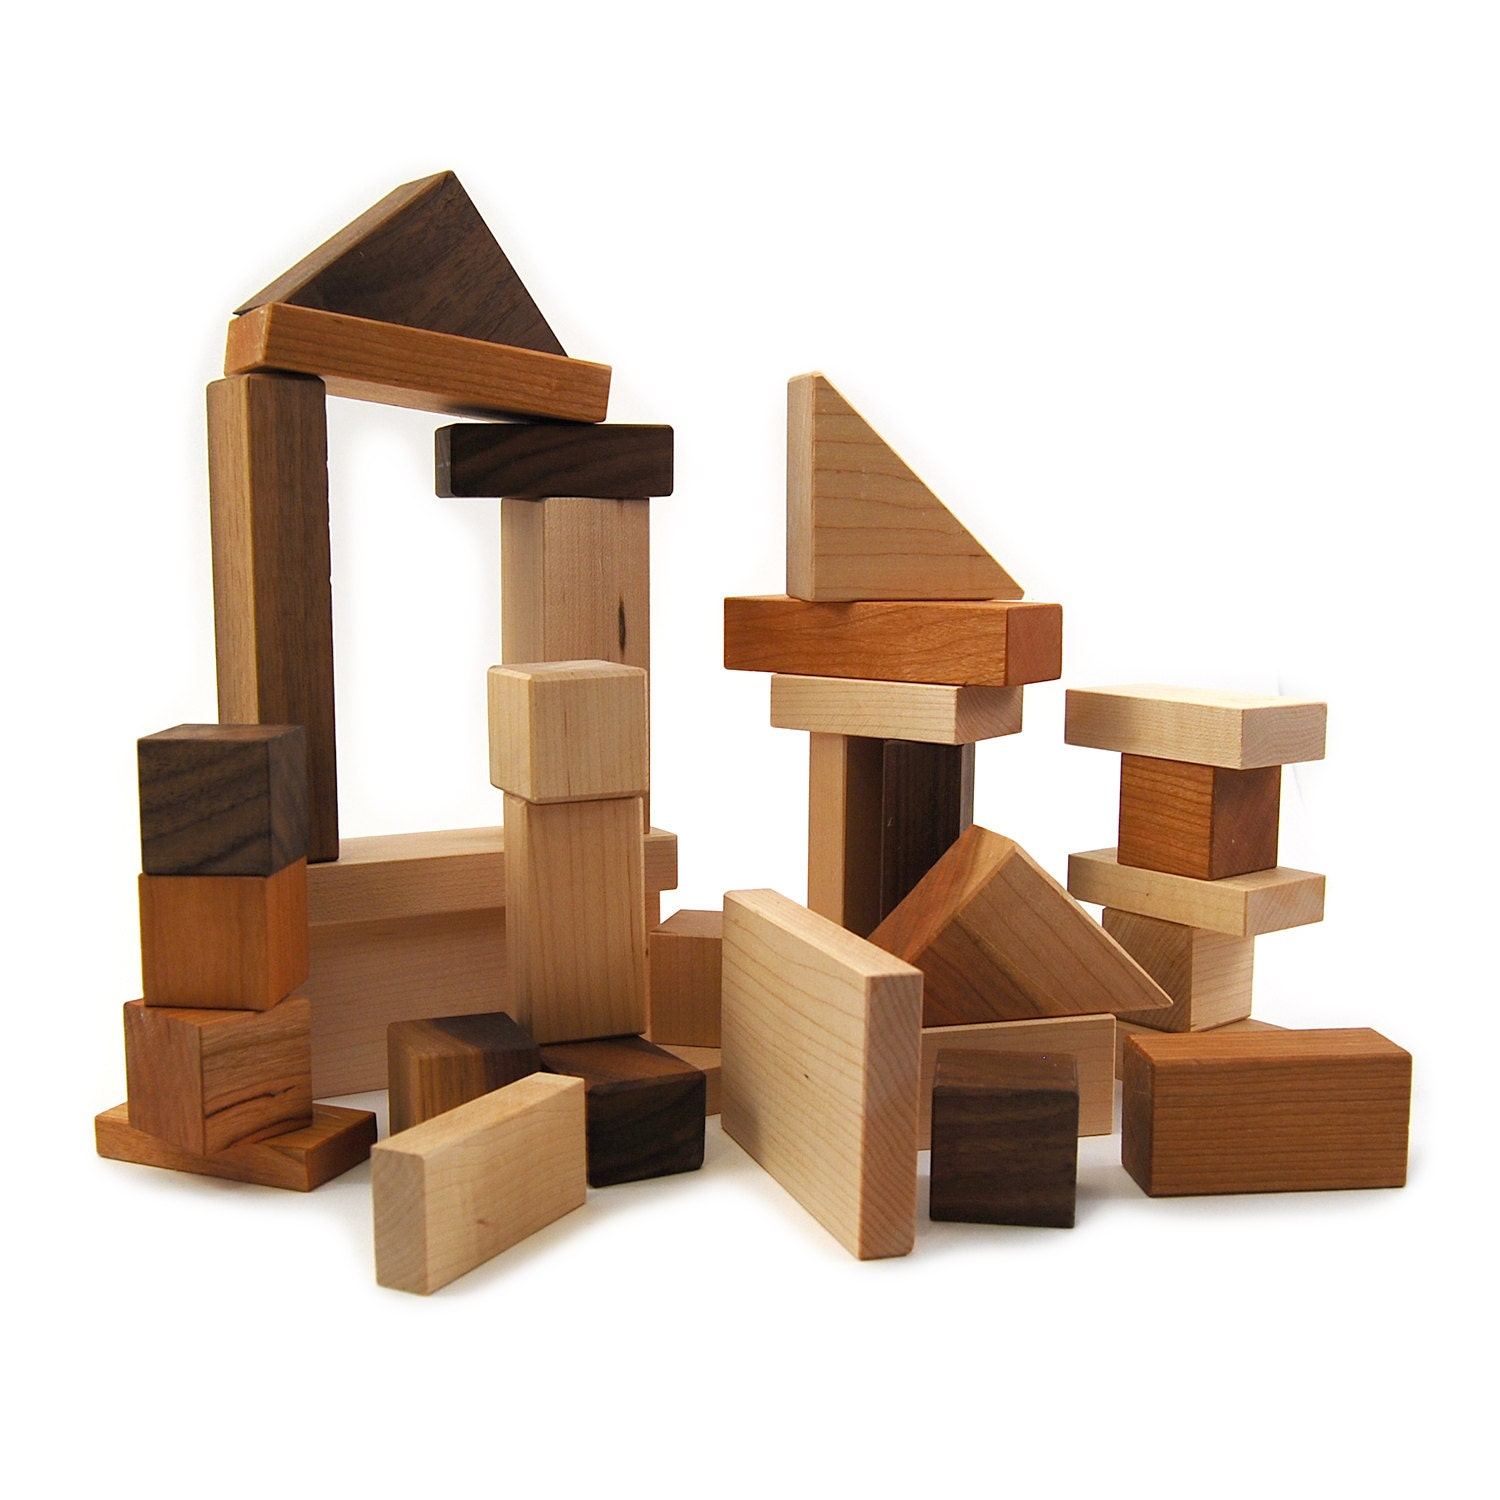 Permalink to Best Wooden Blocks for toddlers Pictures